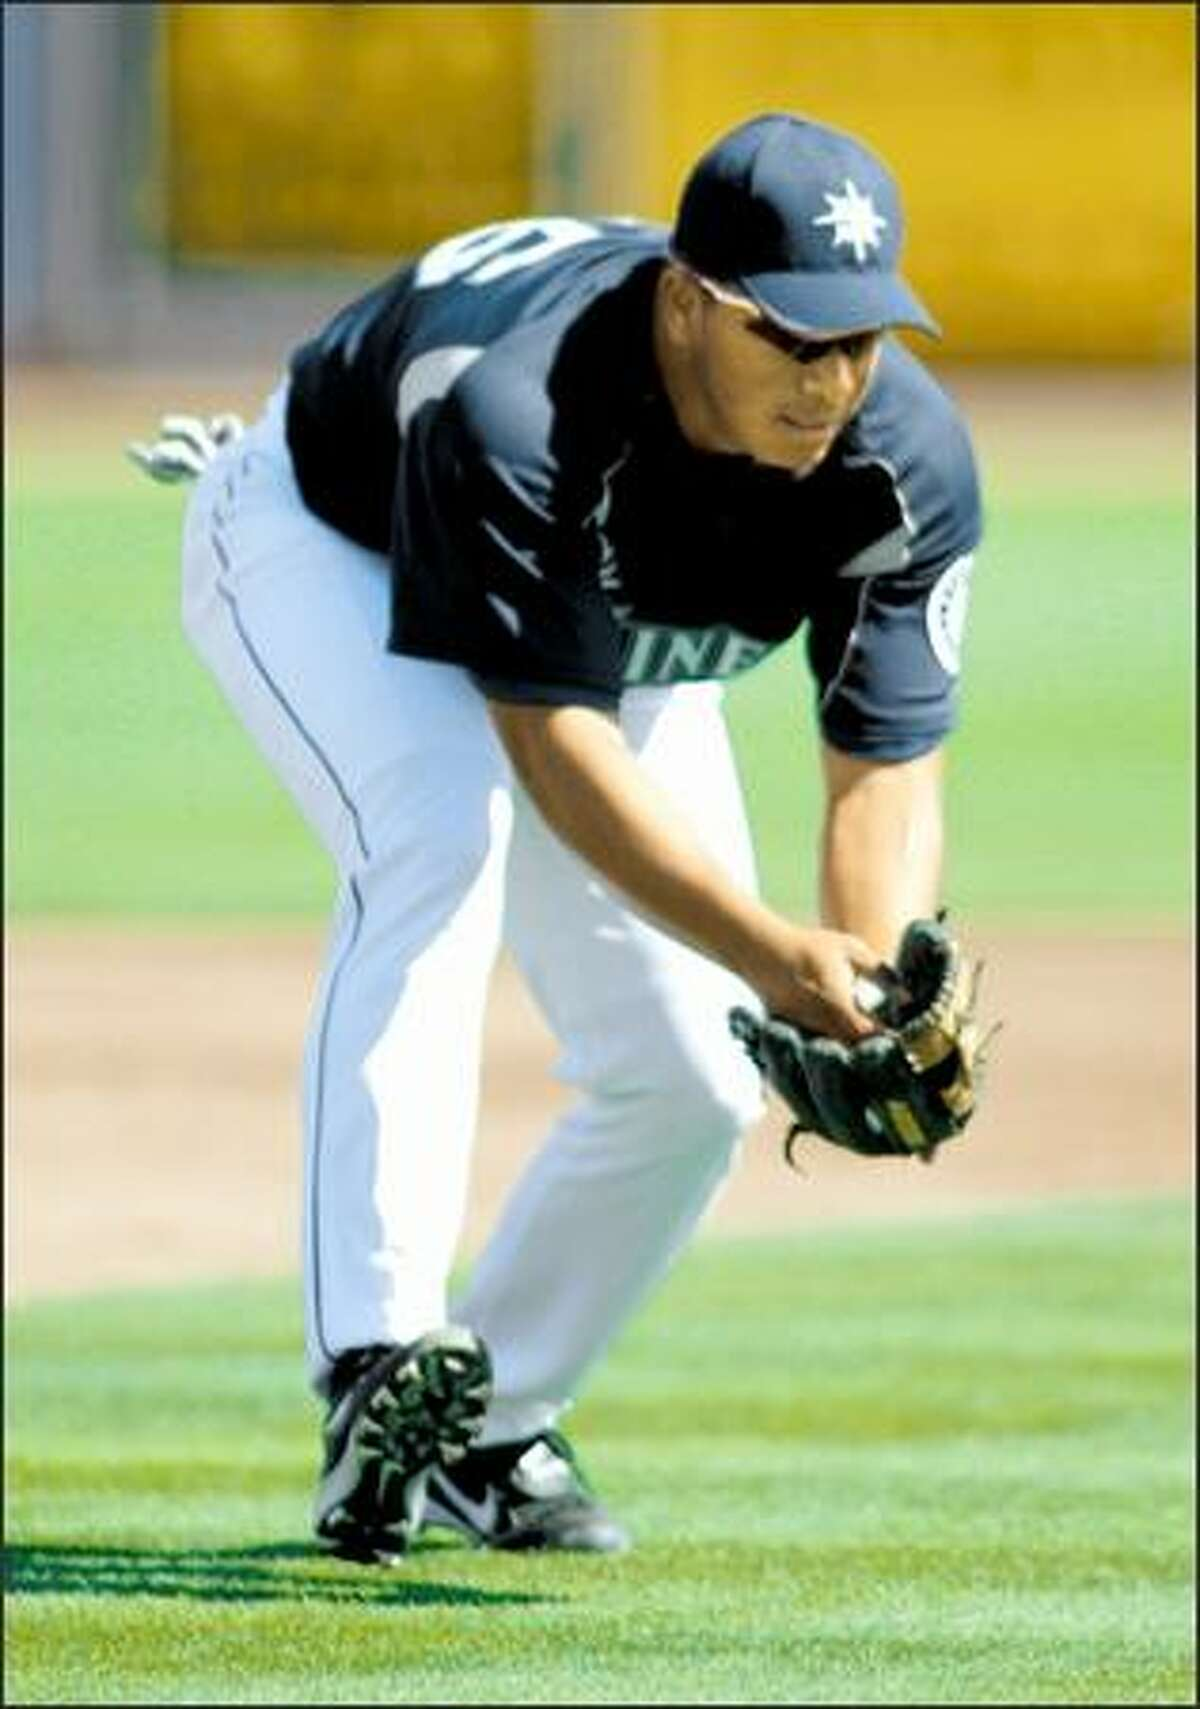 """The Mariners project Jose Lopez as a 20-plus homer player in the major leagues. """"He's got a way to go, obviously, but he reminds me of George Bell at the plate,"""" manager Bob Melvin said, referring to the former Blue Jays star."""